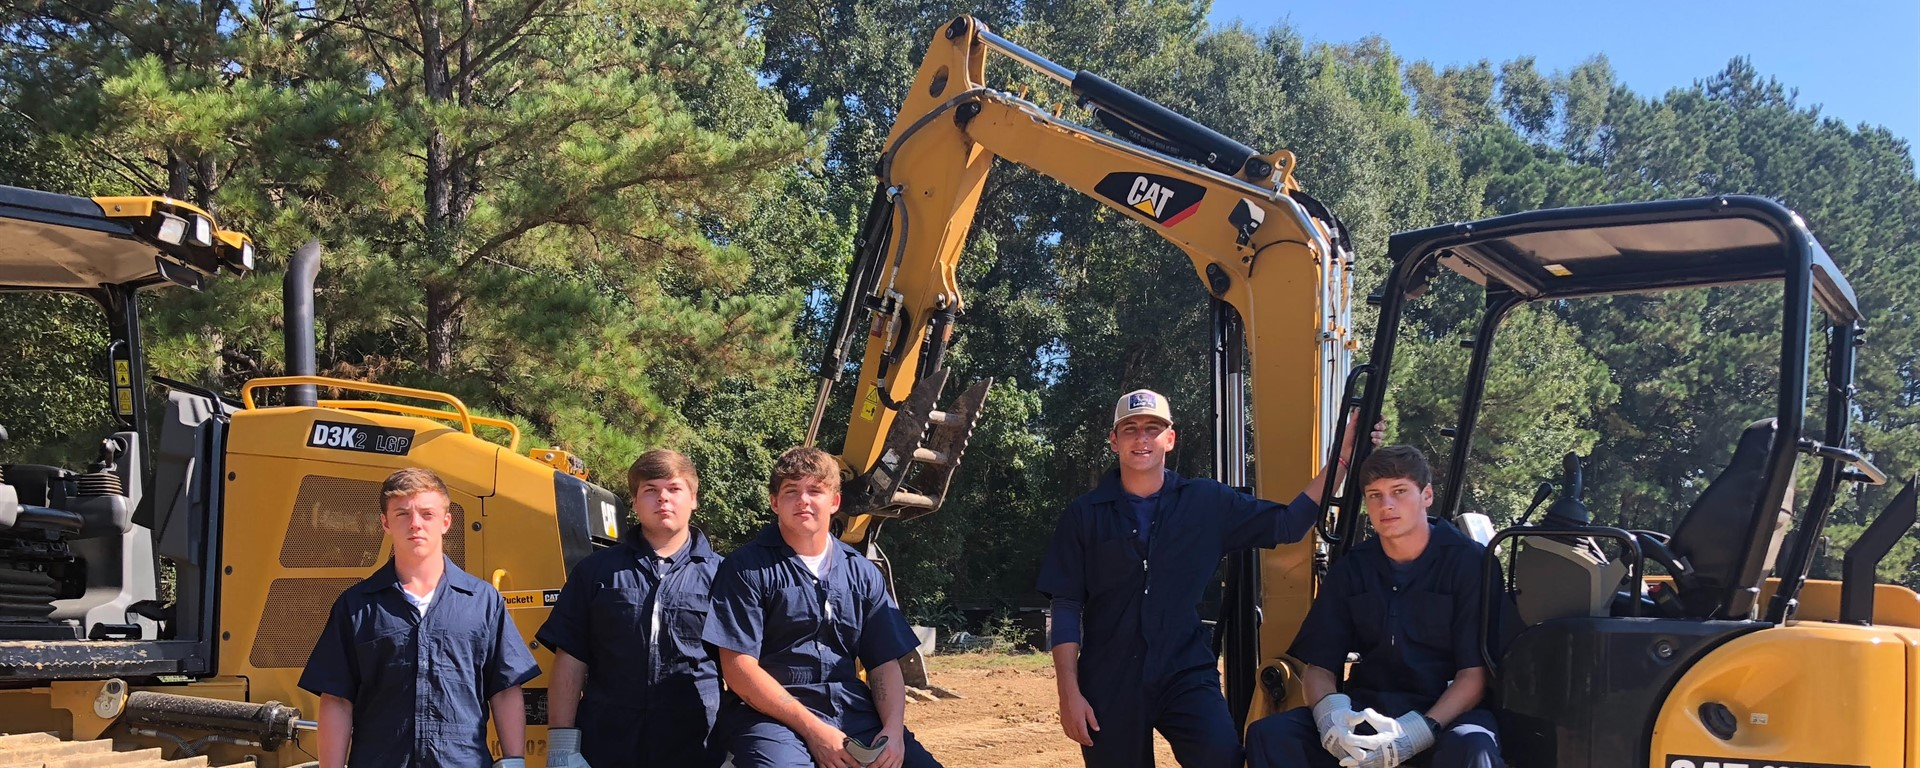 18-19 Heavy Equipment Operations II Students